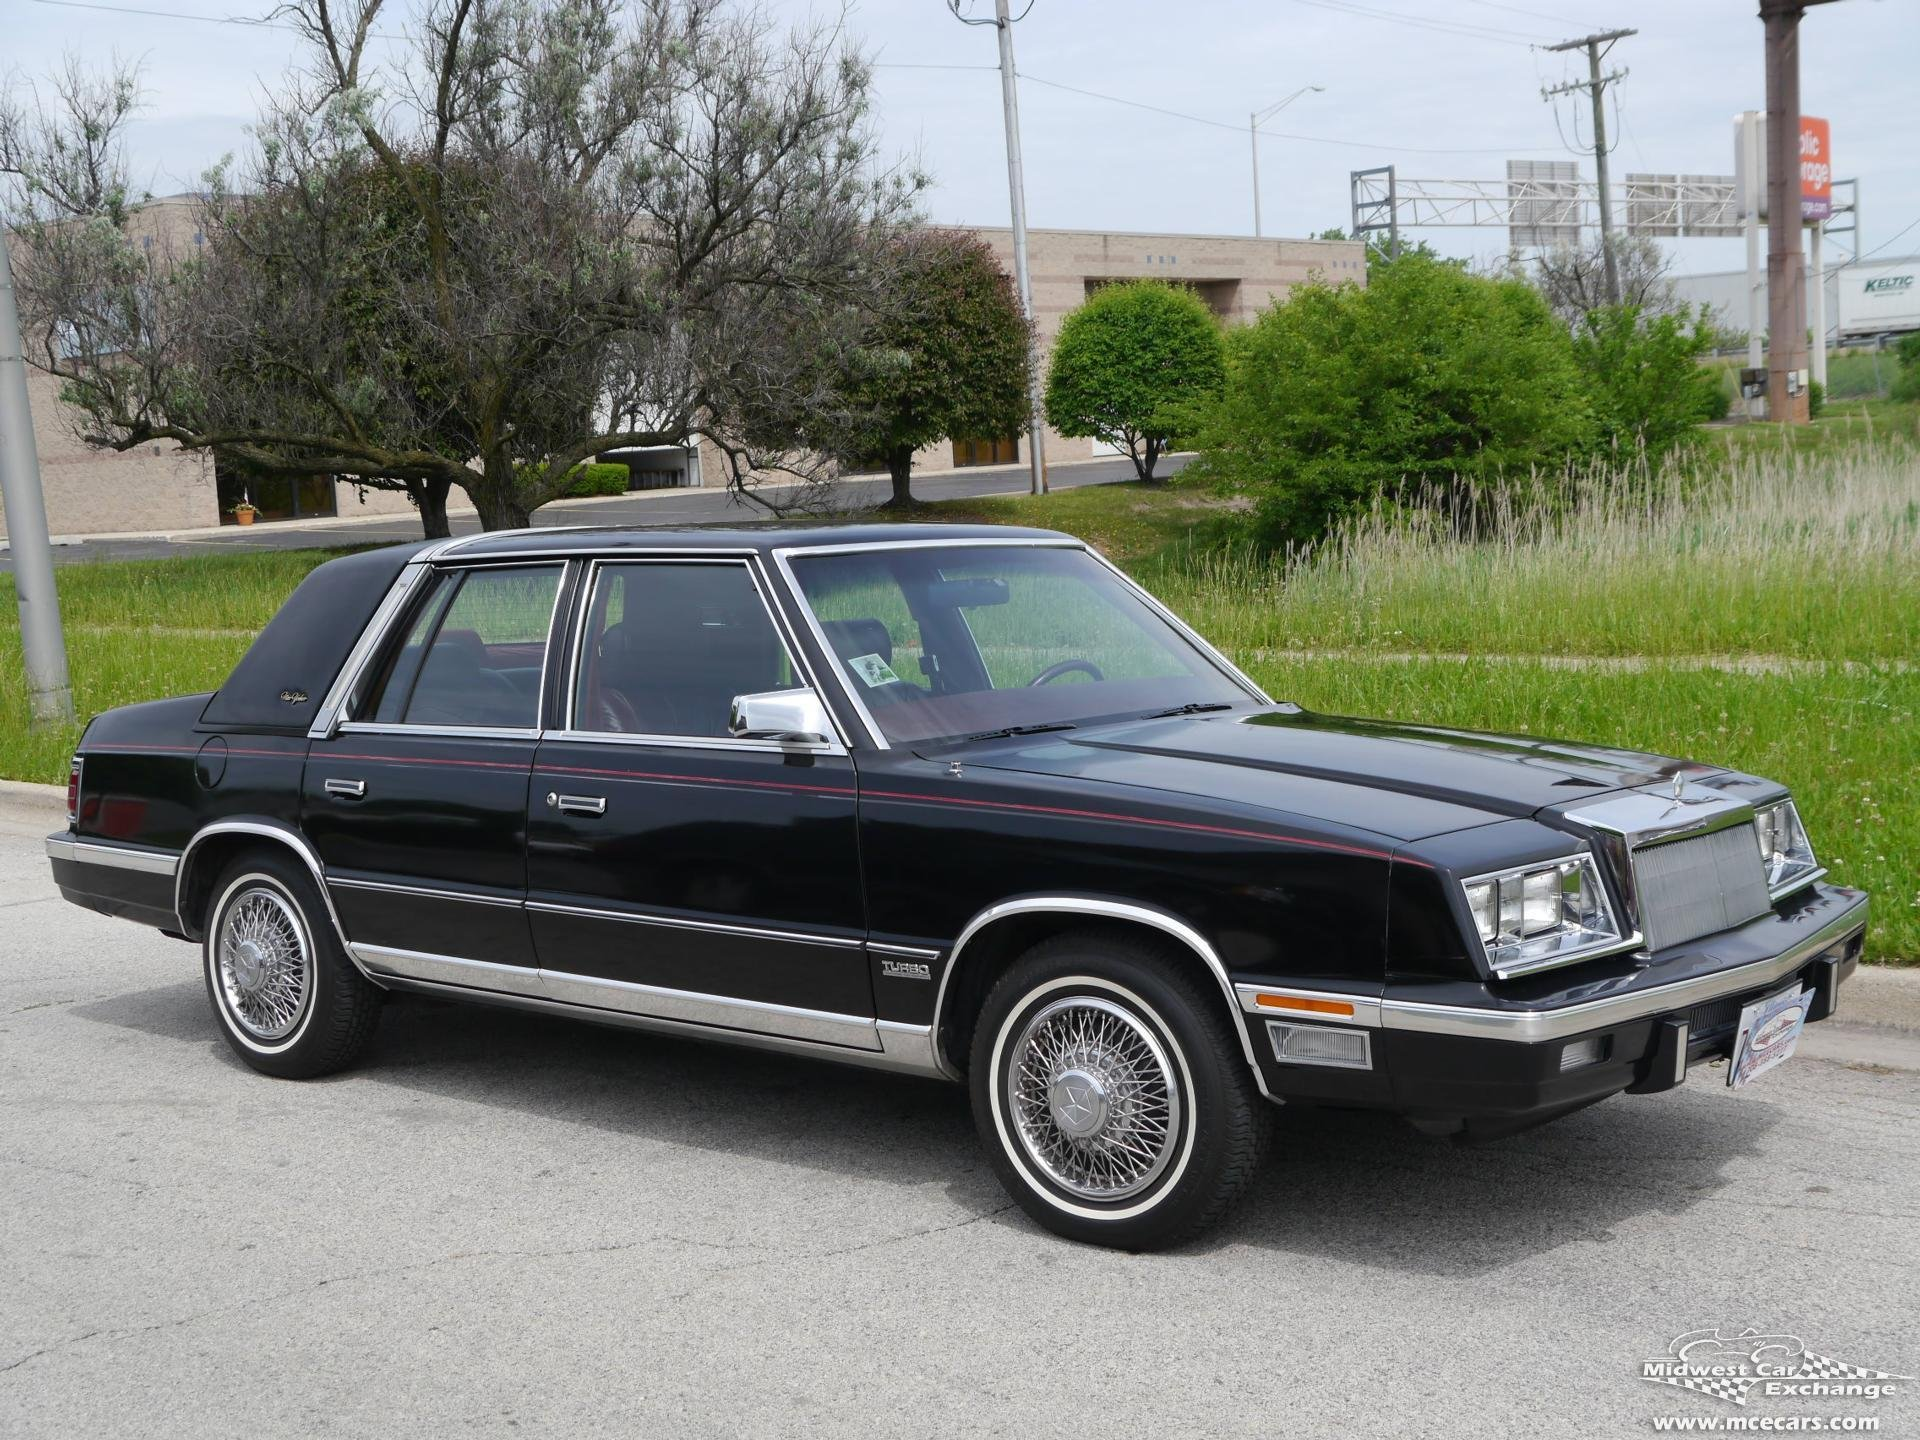 The Best 1987 Chrysler New Yorker